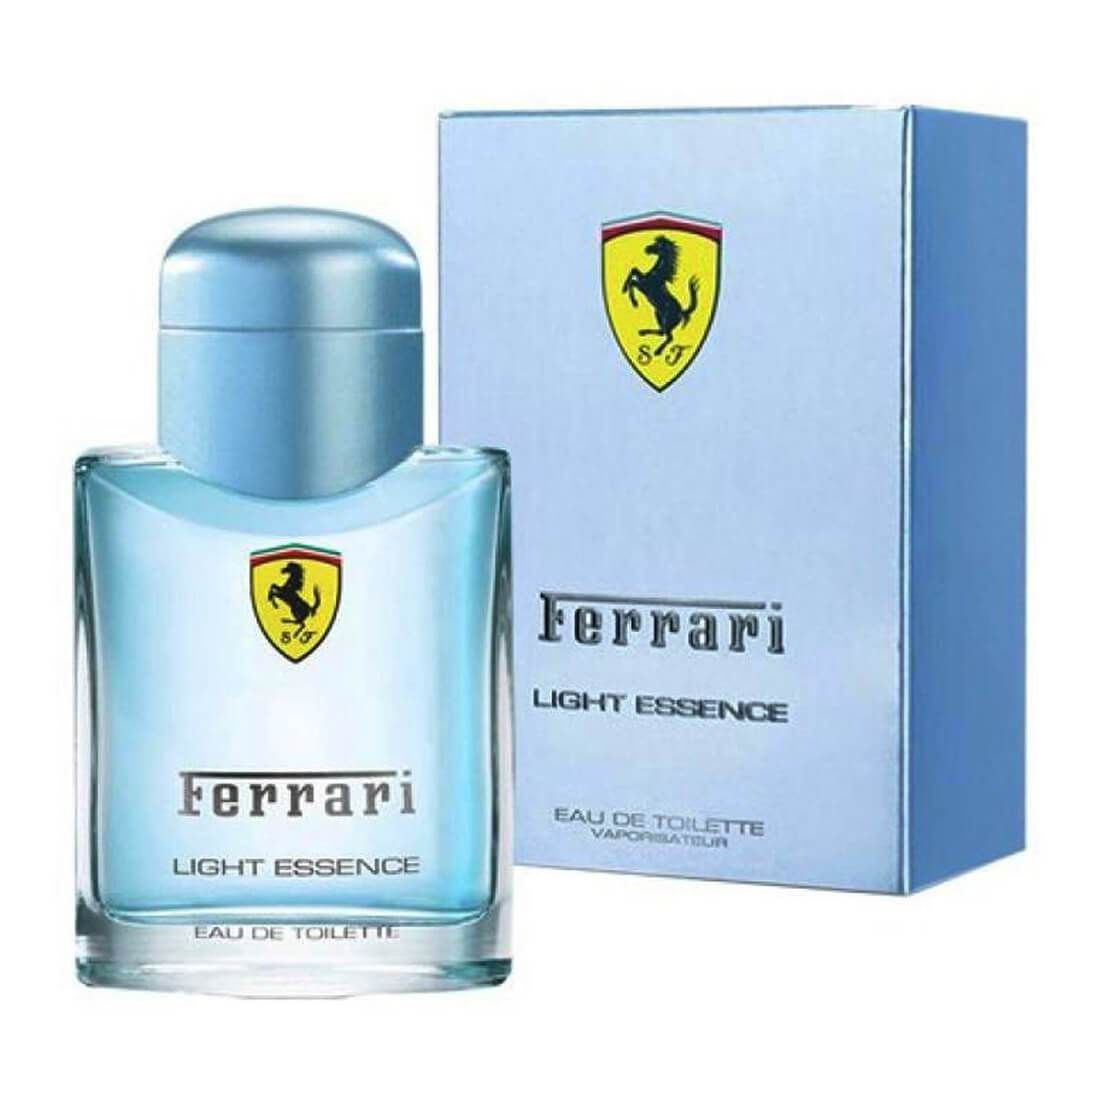 Ferrari Light Essence Perfume For Men - 125ml